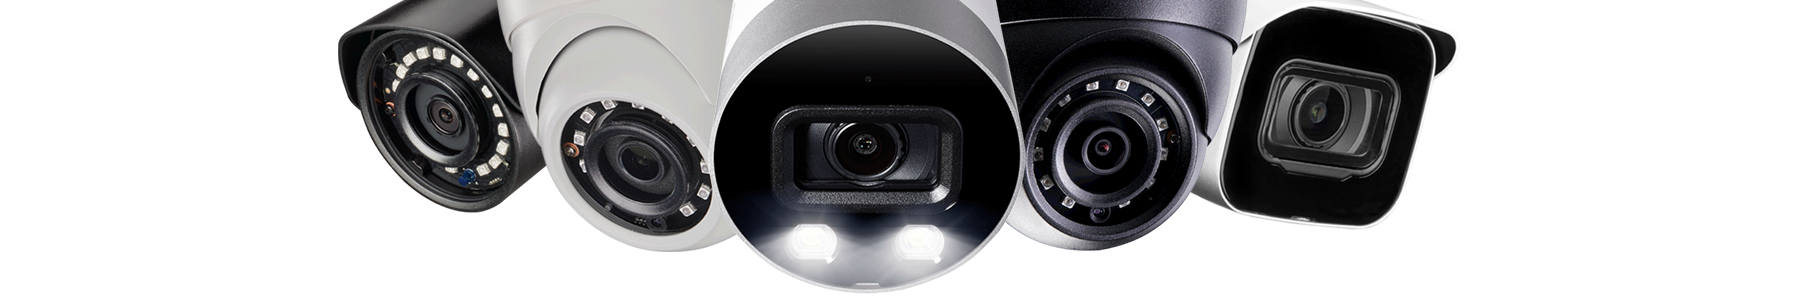 NVR supports all IP cameras